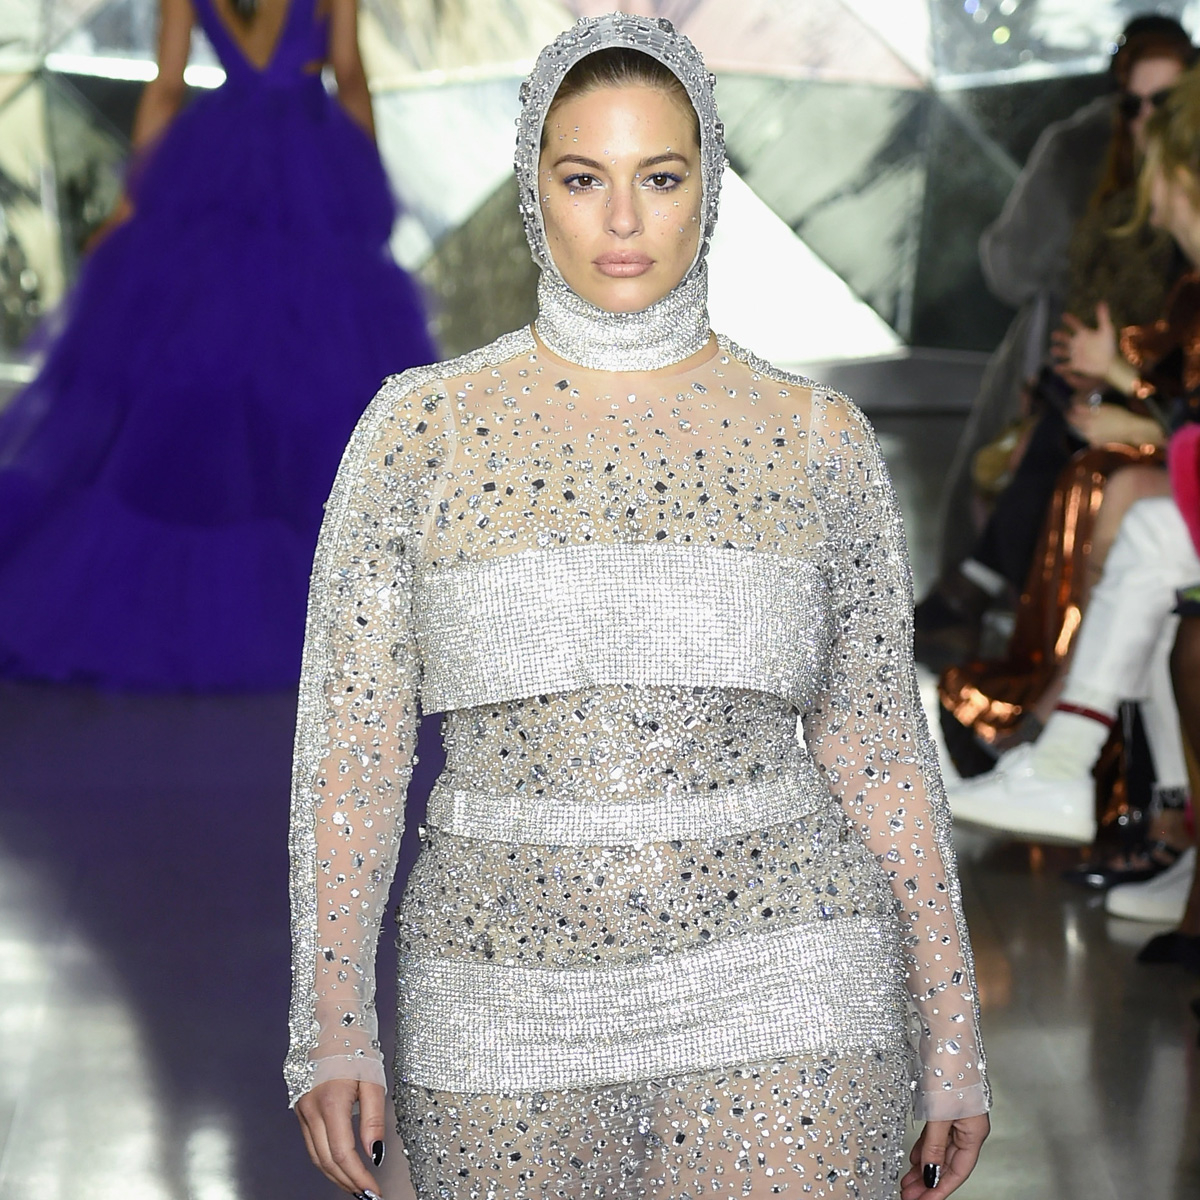 Ashley Graham Shares the New York Fashion Week Moment She'll Never Forget